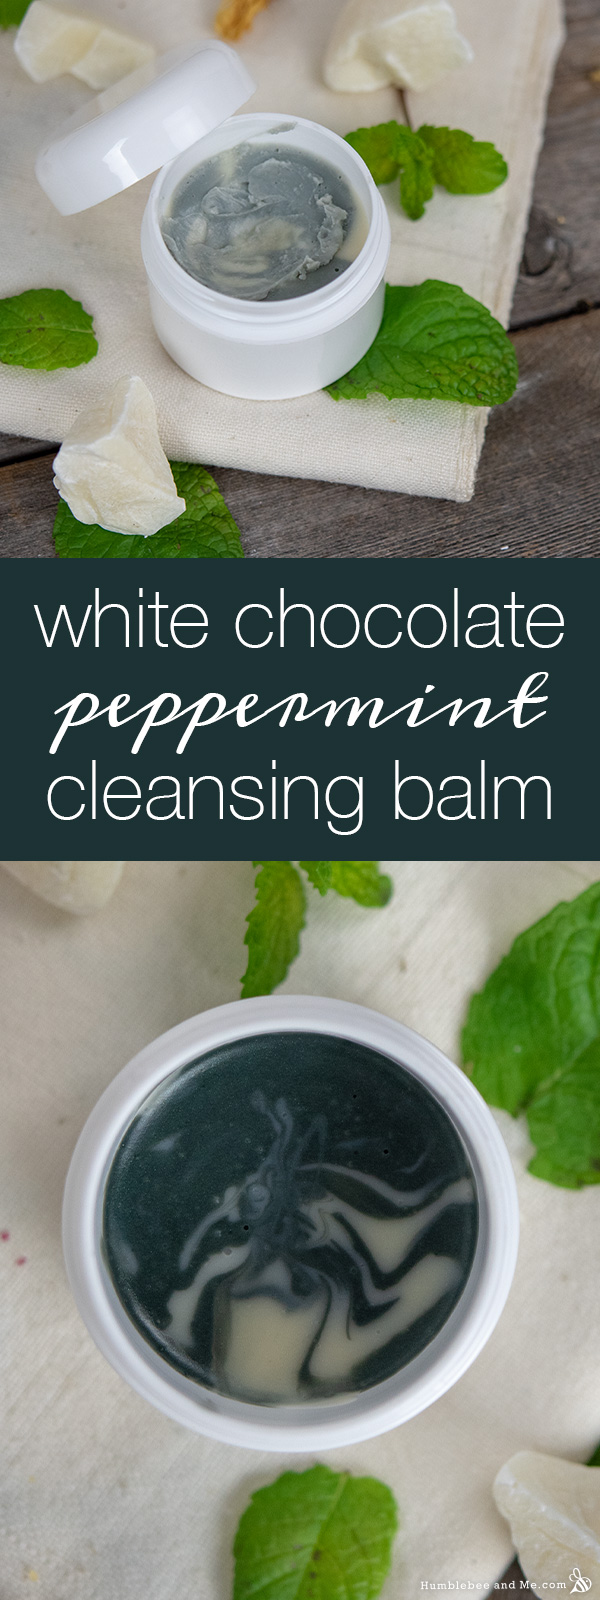 How to Make White Chocolate Peppermint Cleansing Balm